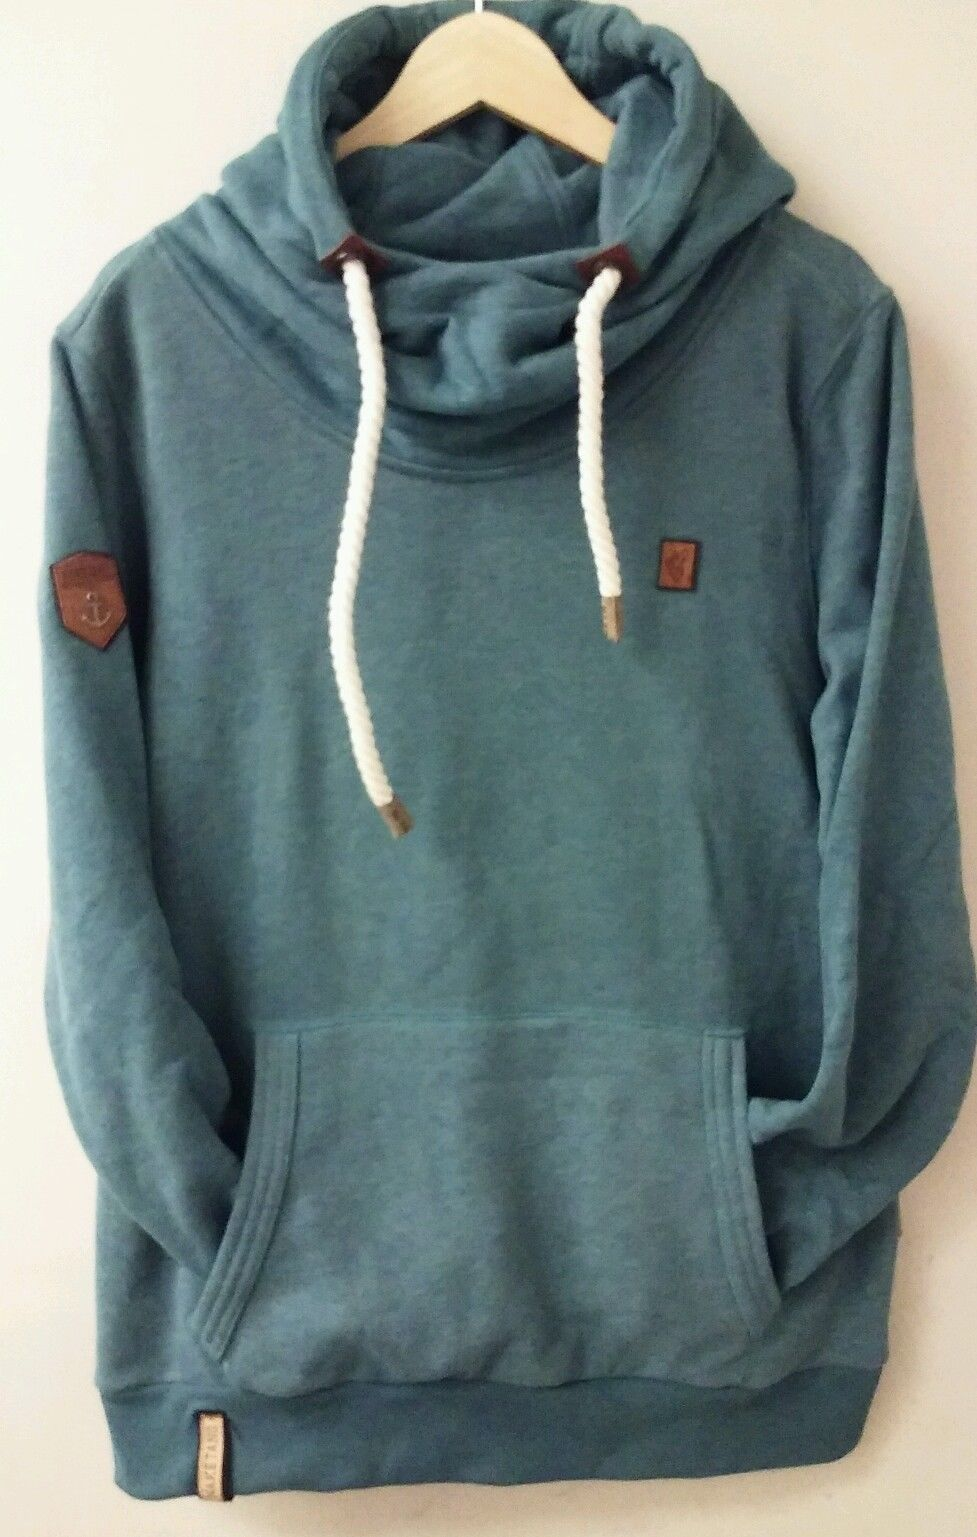 f68d5b426a2b Naketano High Neck sweat Hoodie with A Thick String Rope Avail in M L XL  2XL   eBay